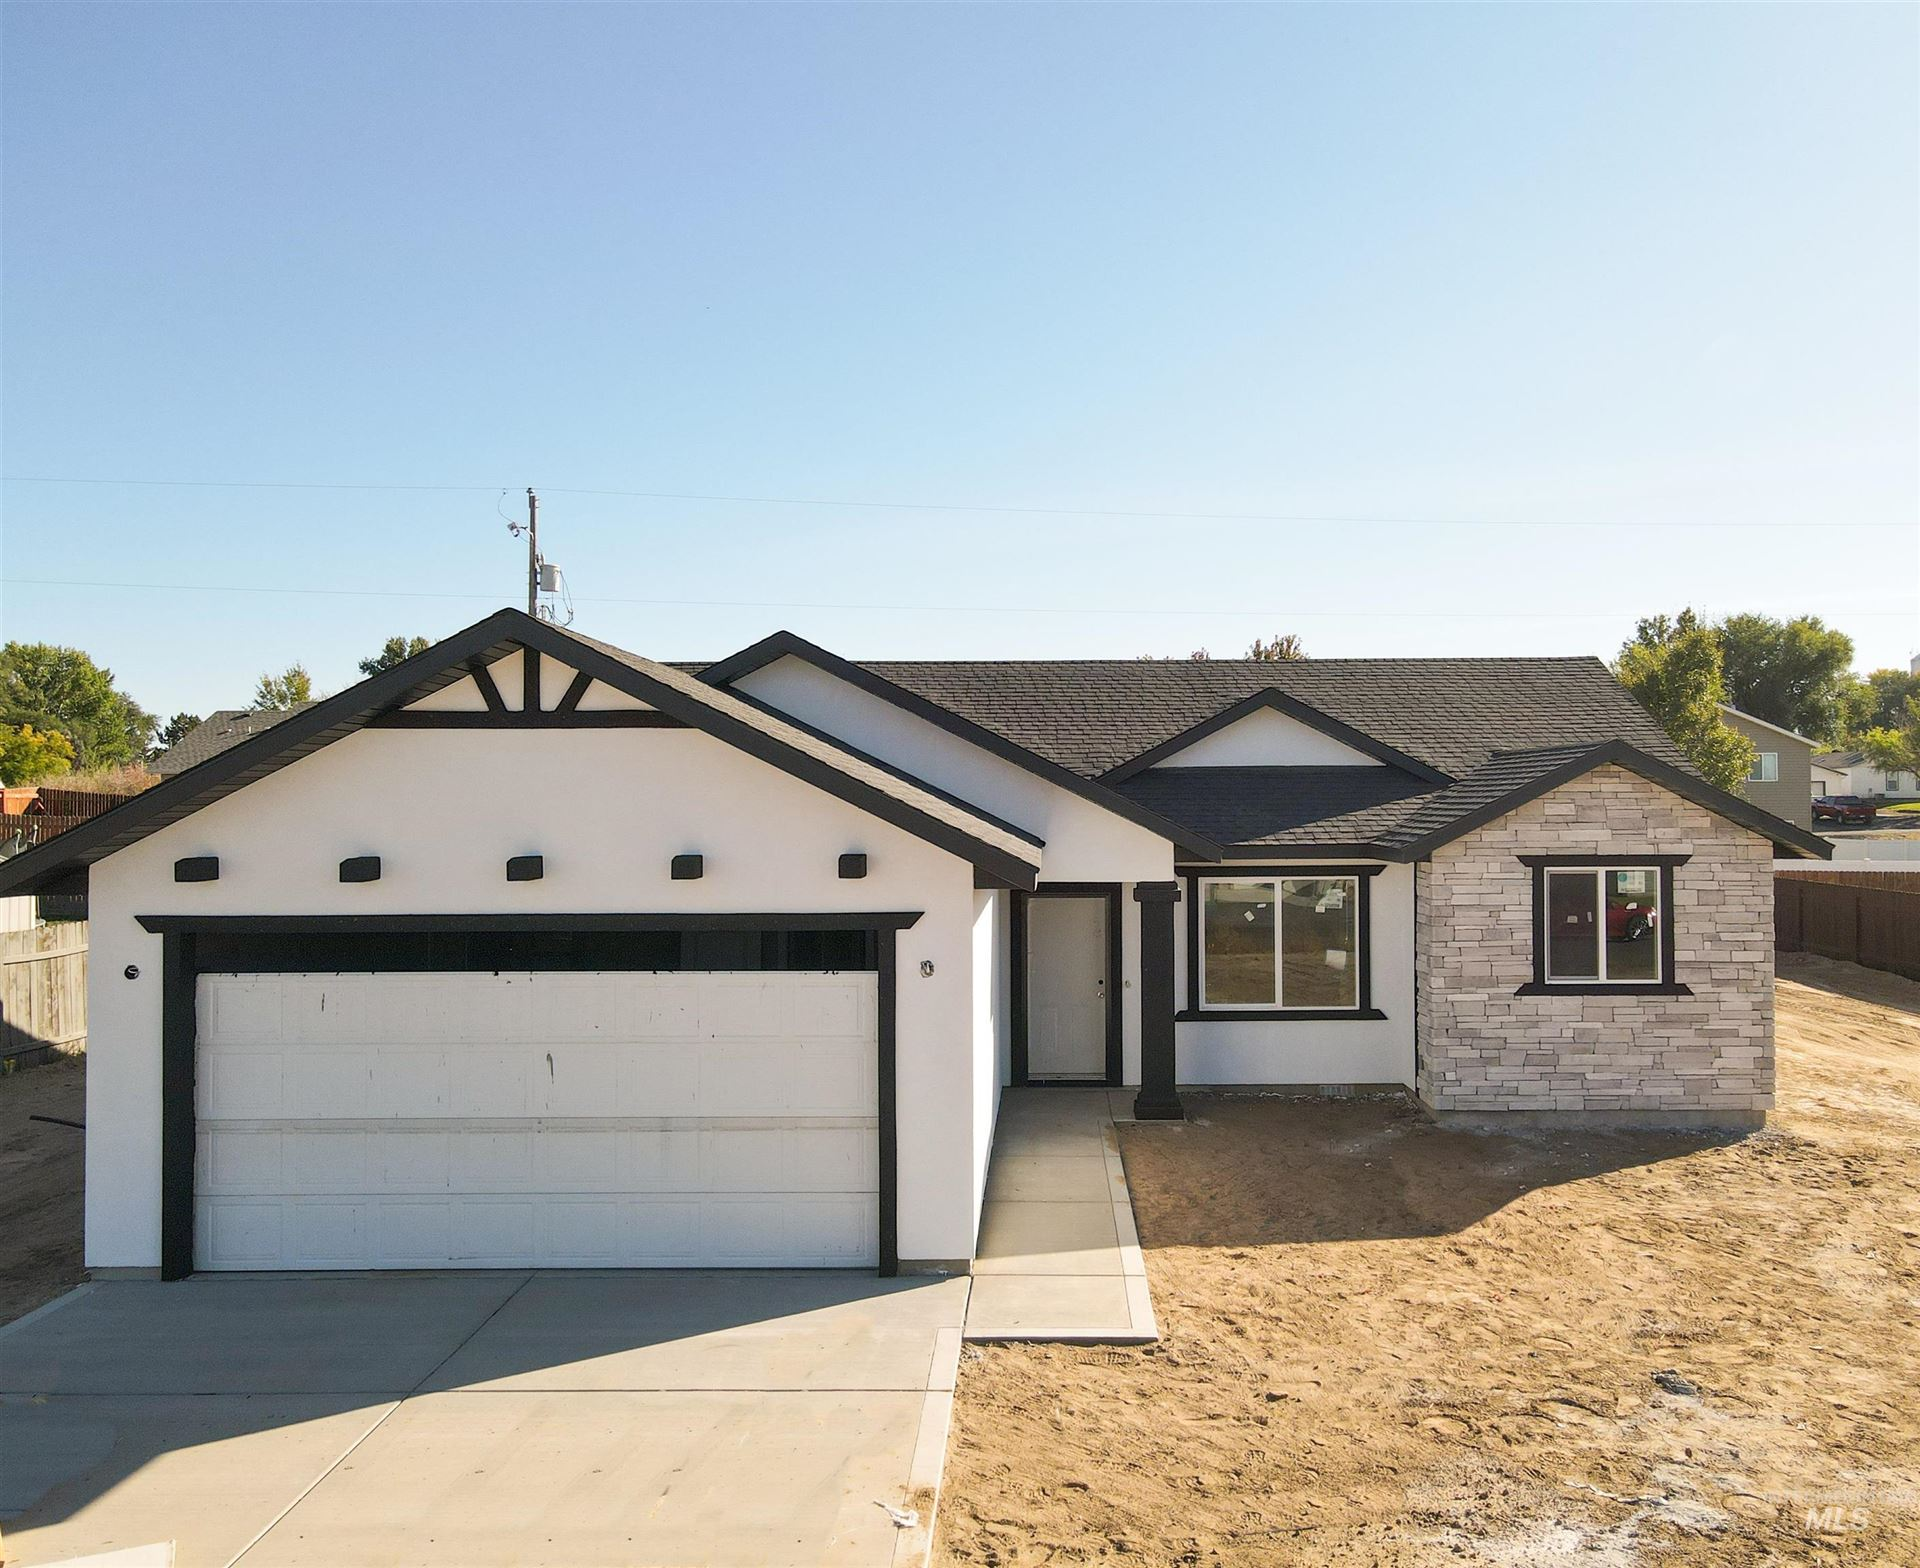 339 7th Ave W, Wendell, ID 83355 - MLS#: 98821217